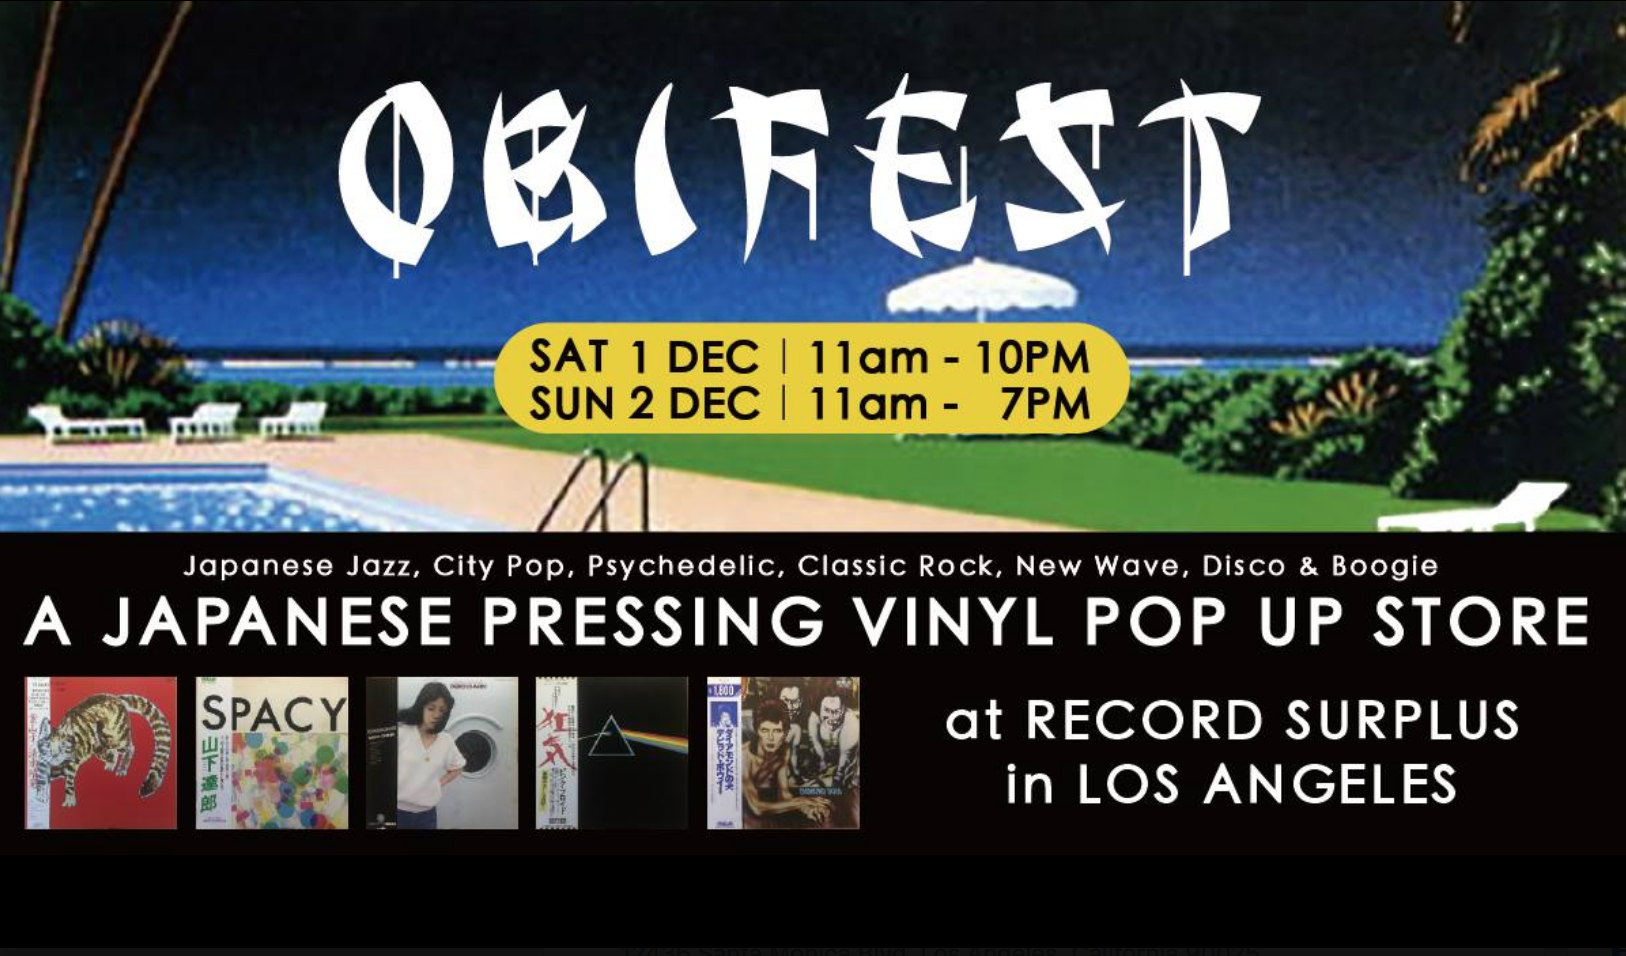 OBIFEST Japanese Vinyl Pop Up Shop at Record Surplus in Los Angeles